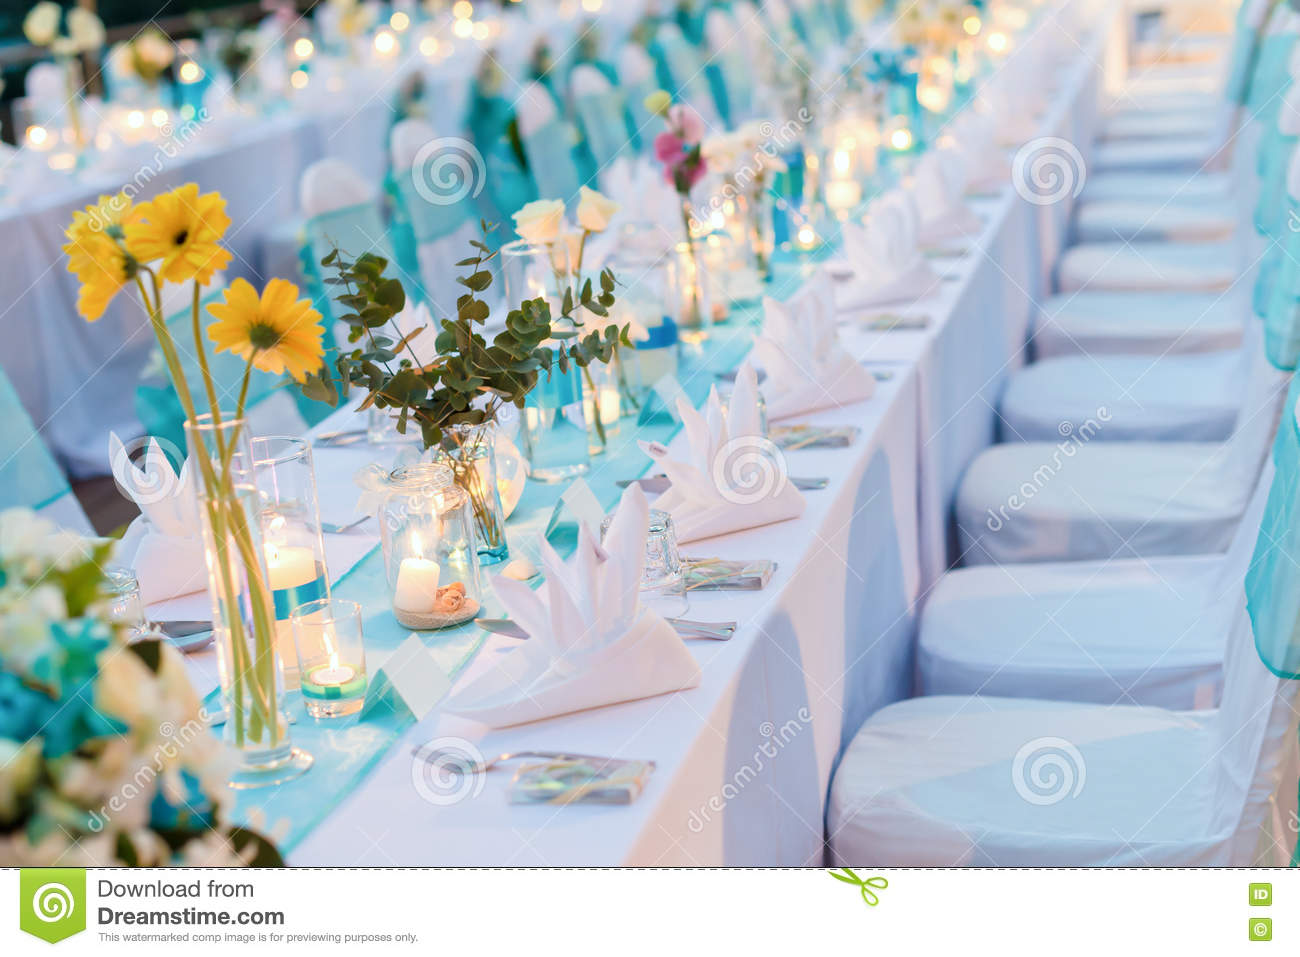 Romantic Dinner Setup Wedding Stock Image Image Of Event